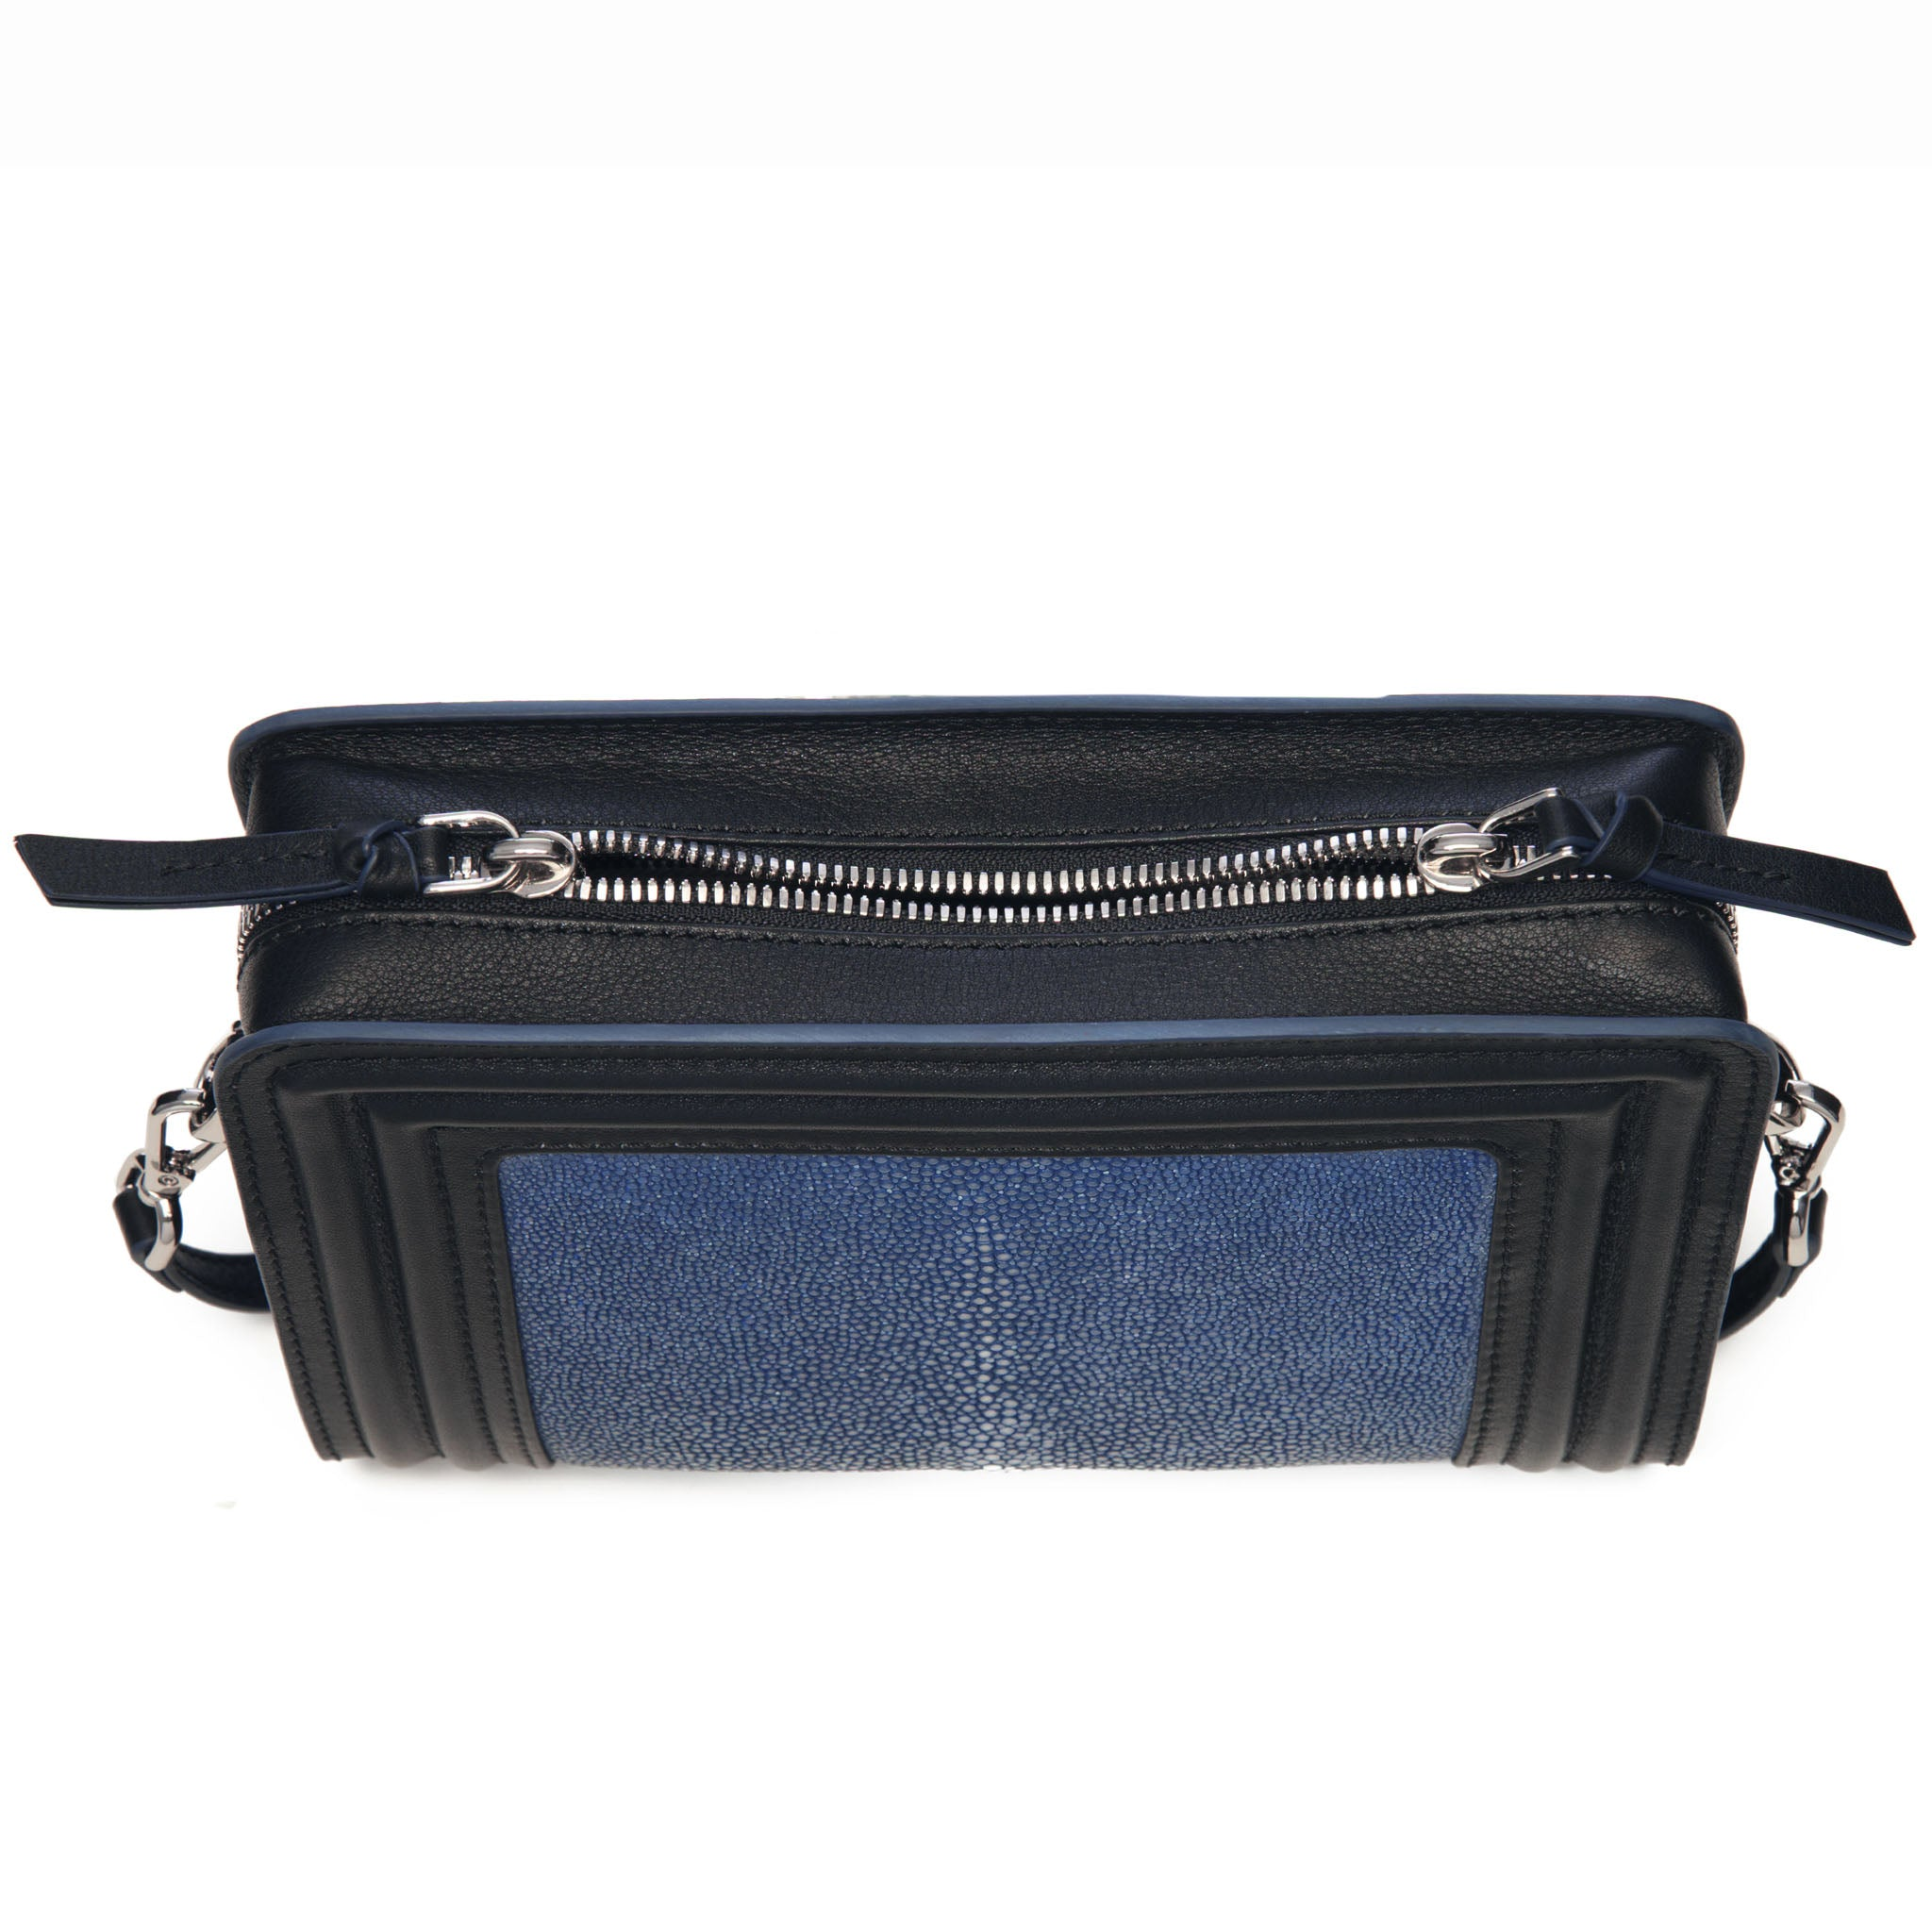 Black Corded Leather Frames Navy Stingray Double Zipper Top Cross Body Bag Top View Nora - Vivo Direct